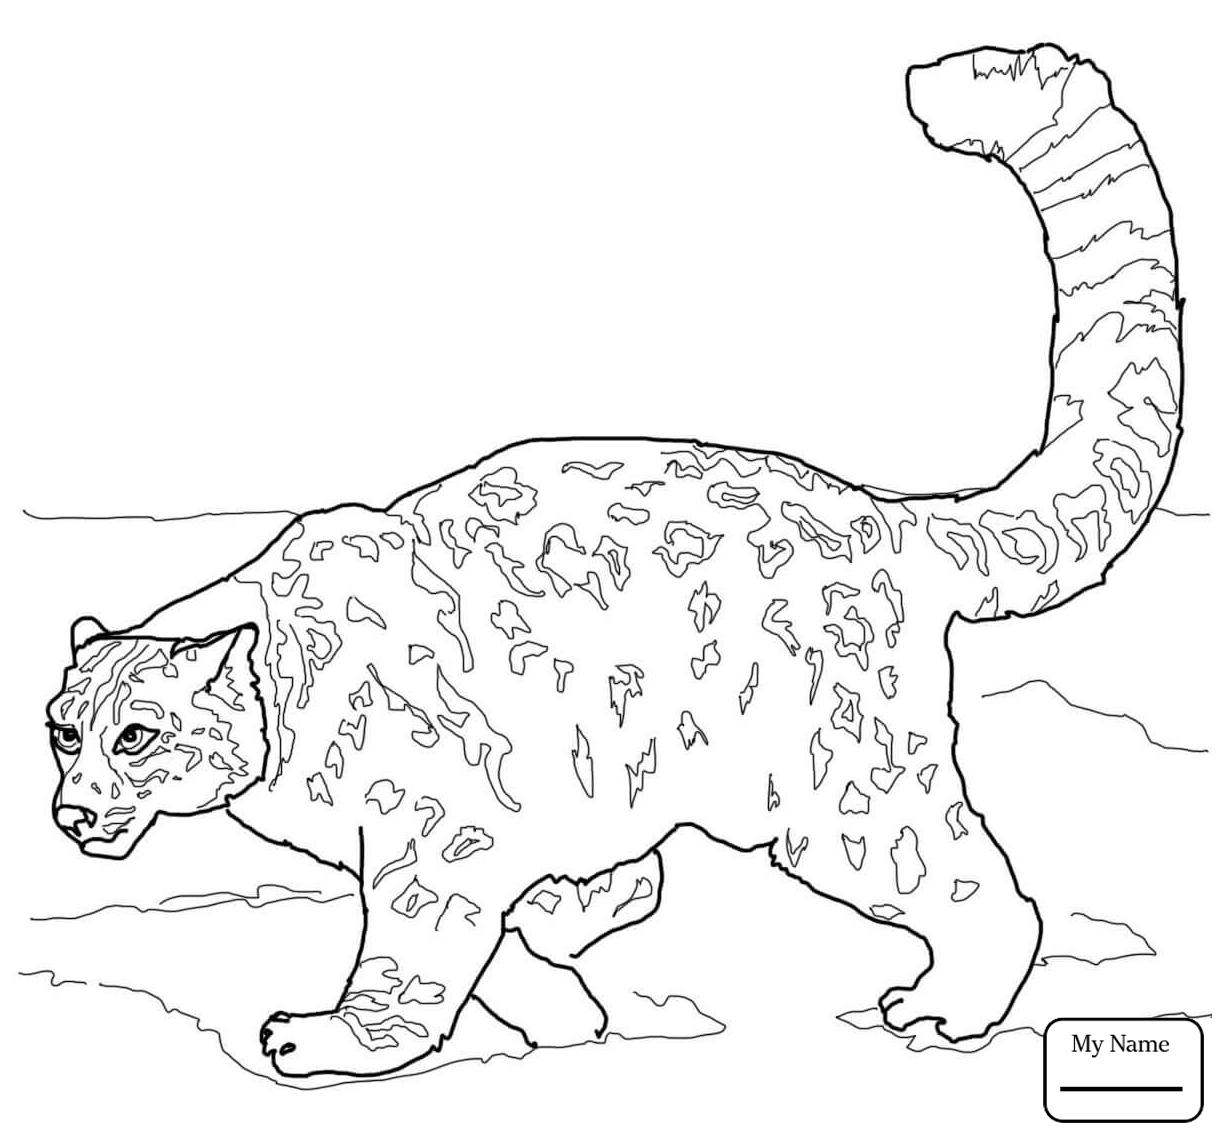 1224x1142 Coloring Pages For Kids Snow Leopards Mammals Crouching Snow